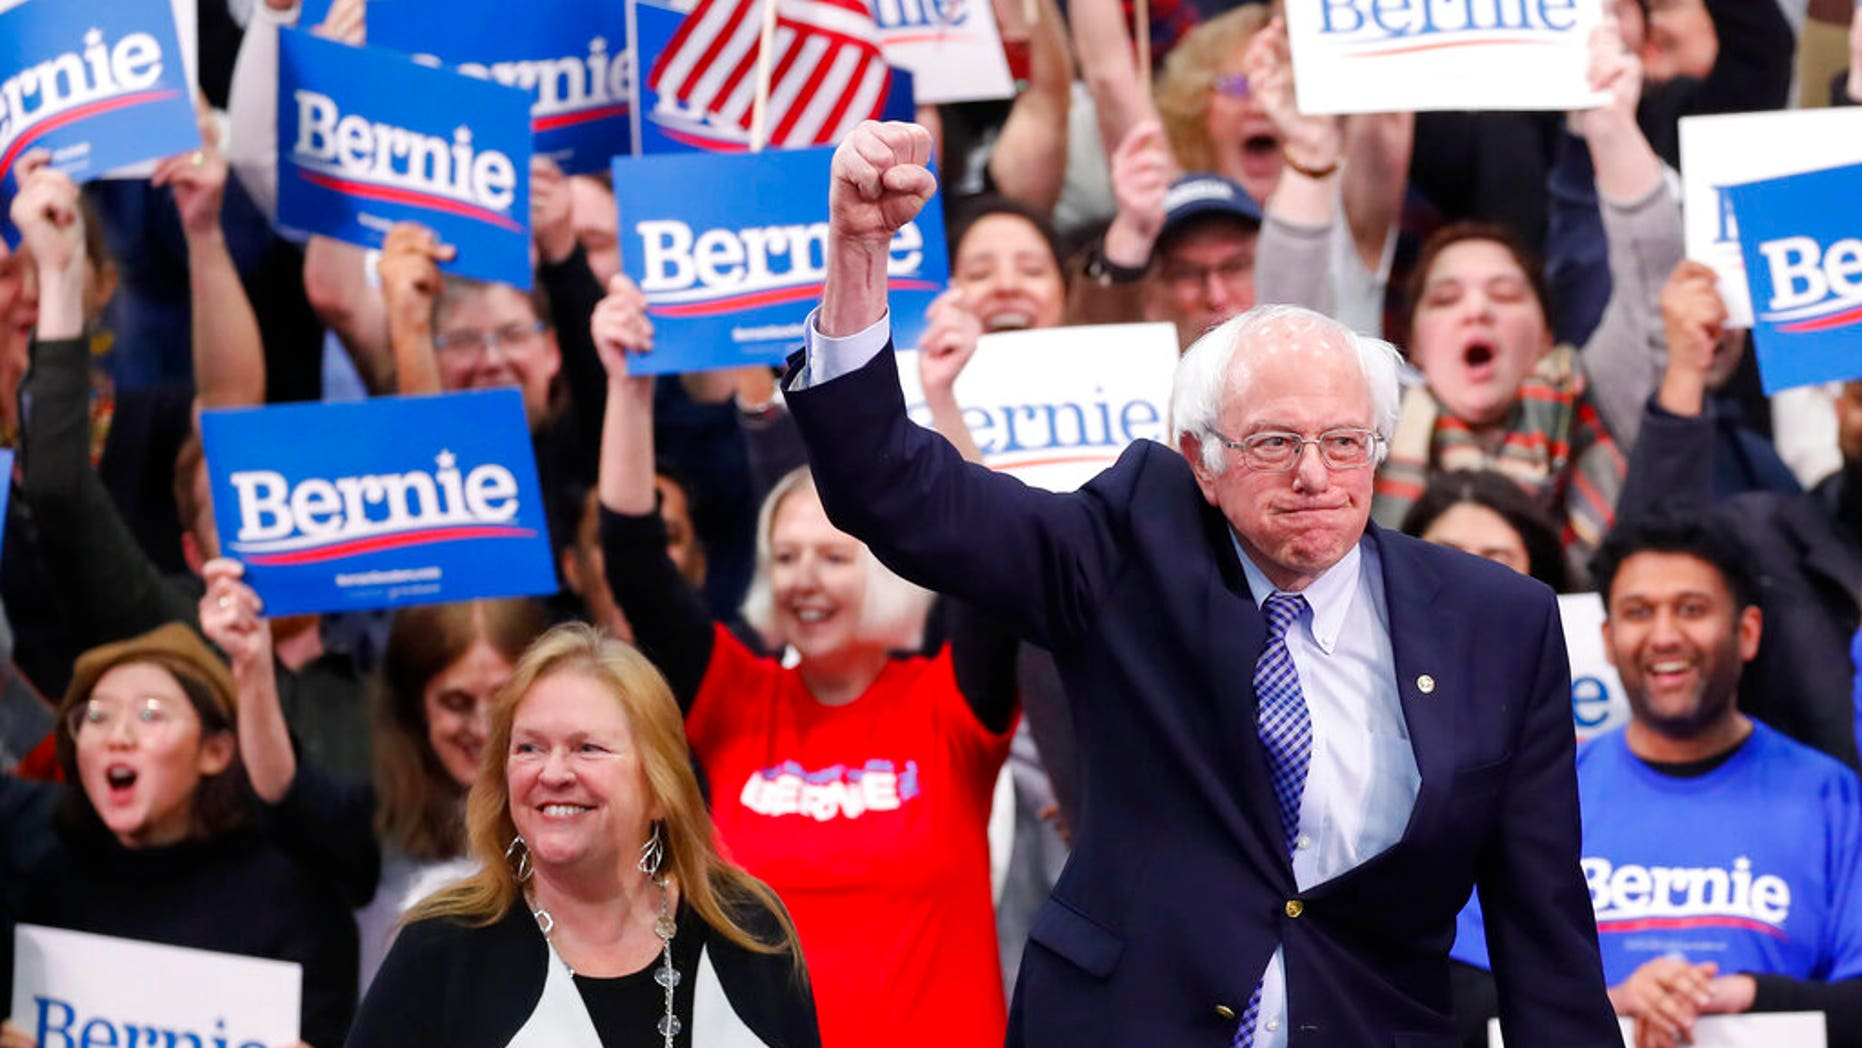 Democratic presidential candidate Sen. Bernie Sanders, I-Vt., with his wife Jane O'Meara Sanders, arrives to speak to supporters at a primary night election rally in Manchester, N.H., Tuesday, Feb. 11, 2020. (AP Photo/Pablo Martinez Monsivais)